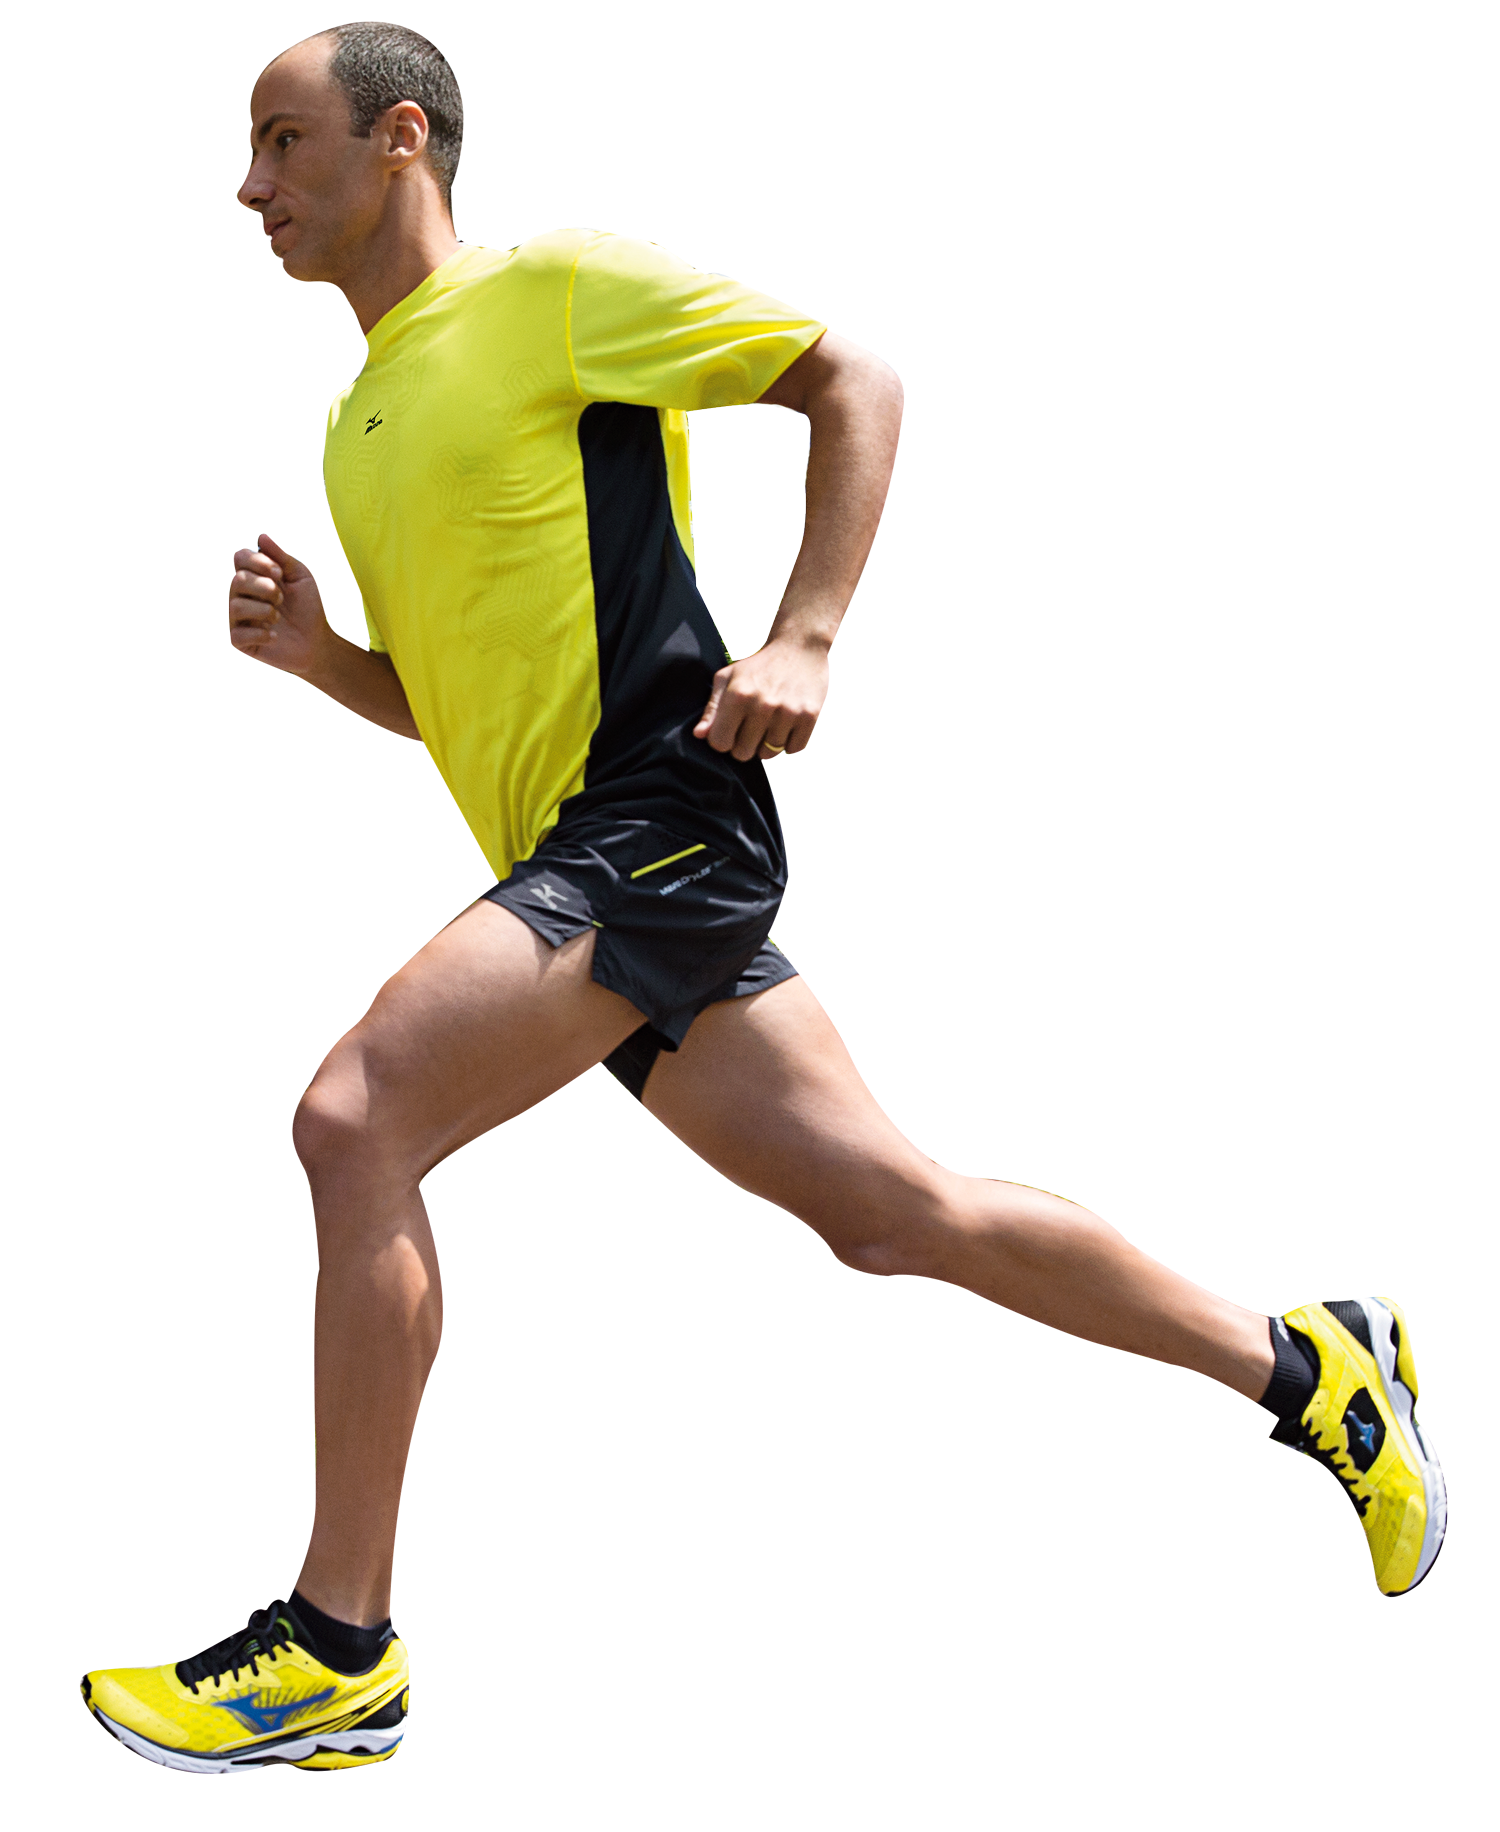 Download Running Man Png Image For Free